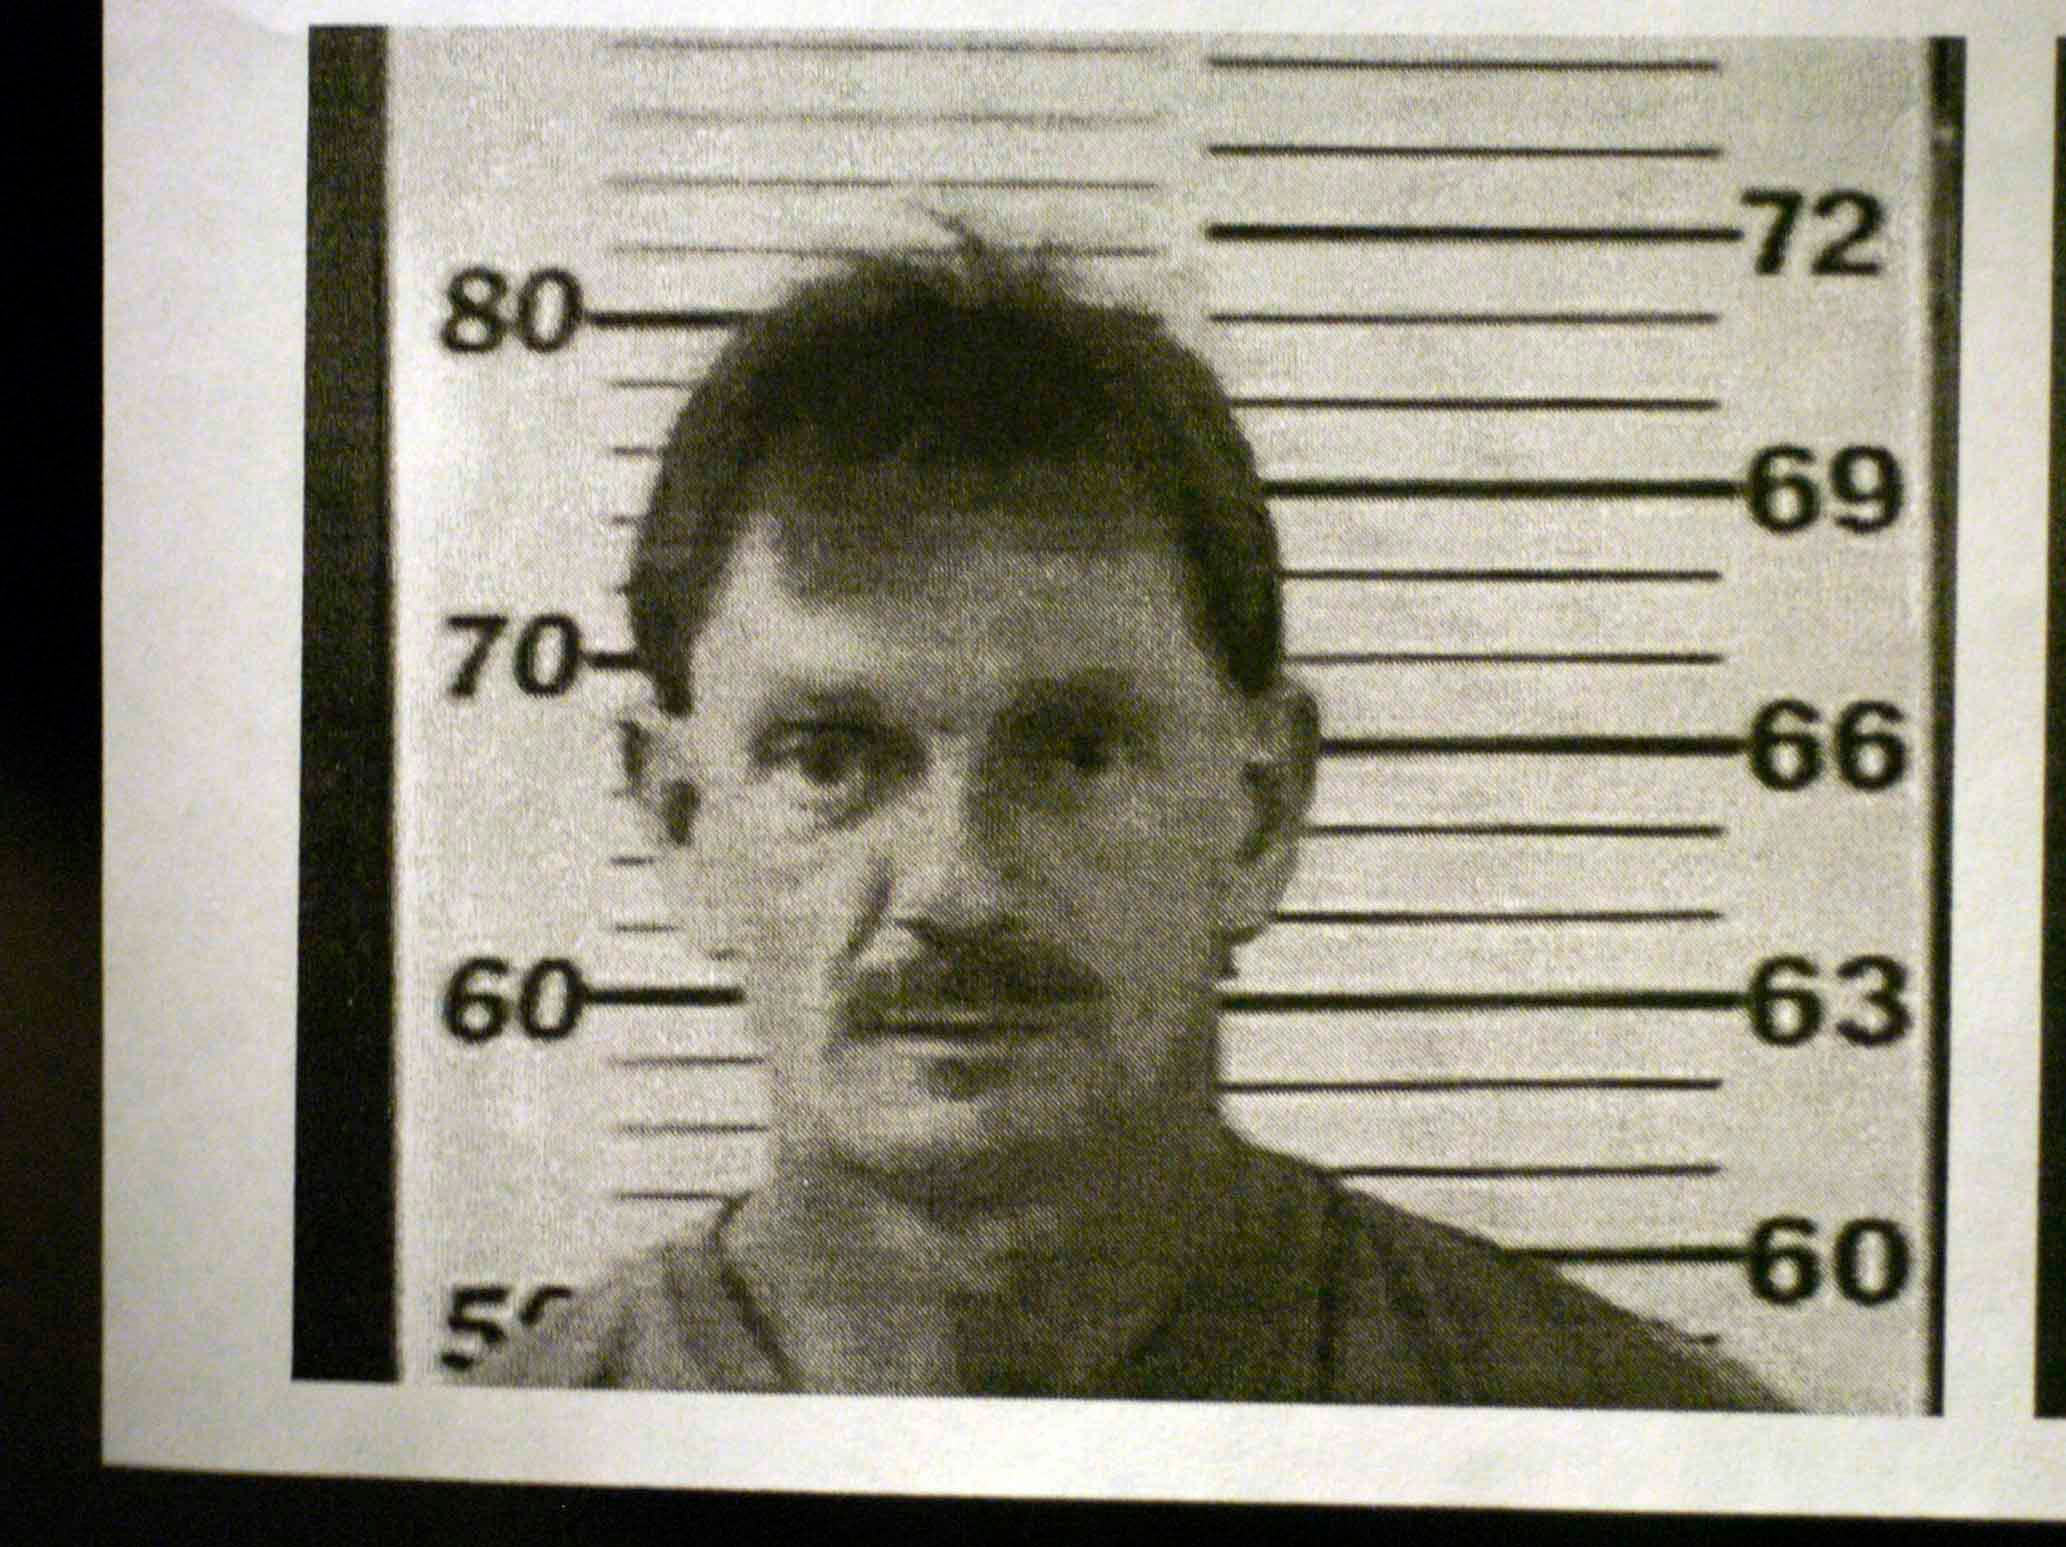 "Copy of the police mug shot of the suspect Clifford Leon Houston, 412 Barnard Narrows Road, Ten Mile, TN who officers are looking for.  (his DOB 12/15/1958, white male, 6'1"", 160 lbs., Brown hair, Brown eyes, father: Clyde Houston)"